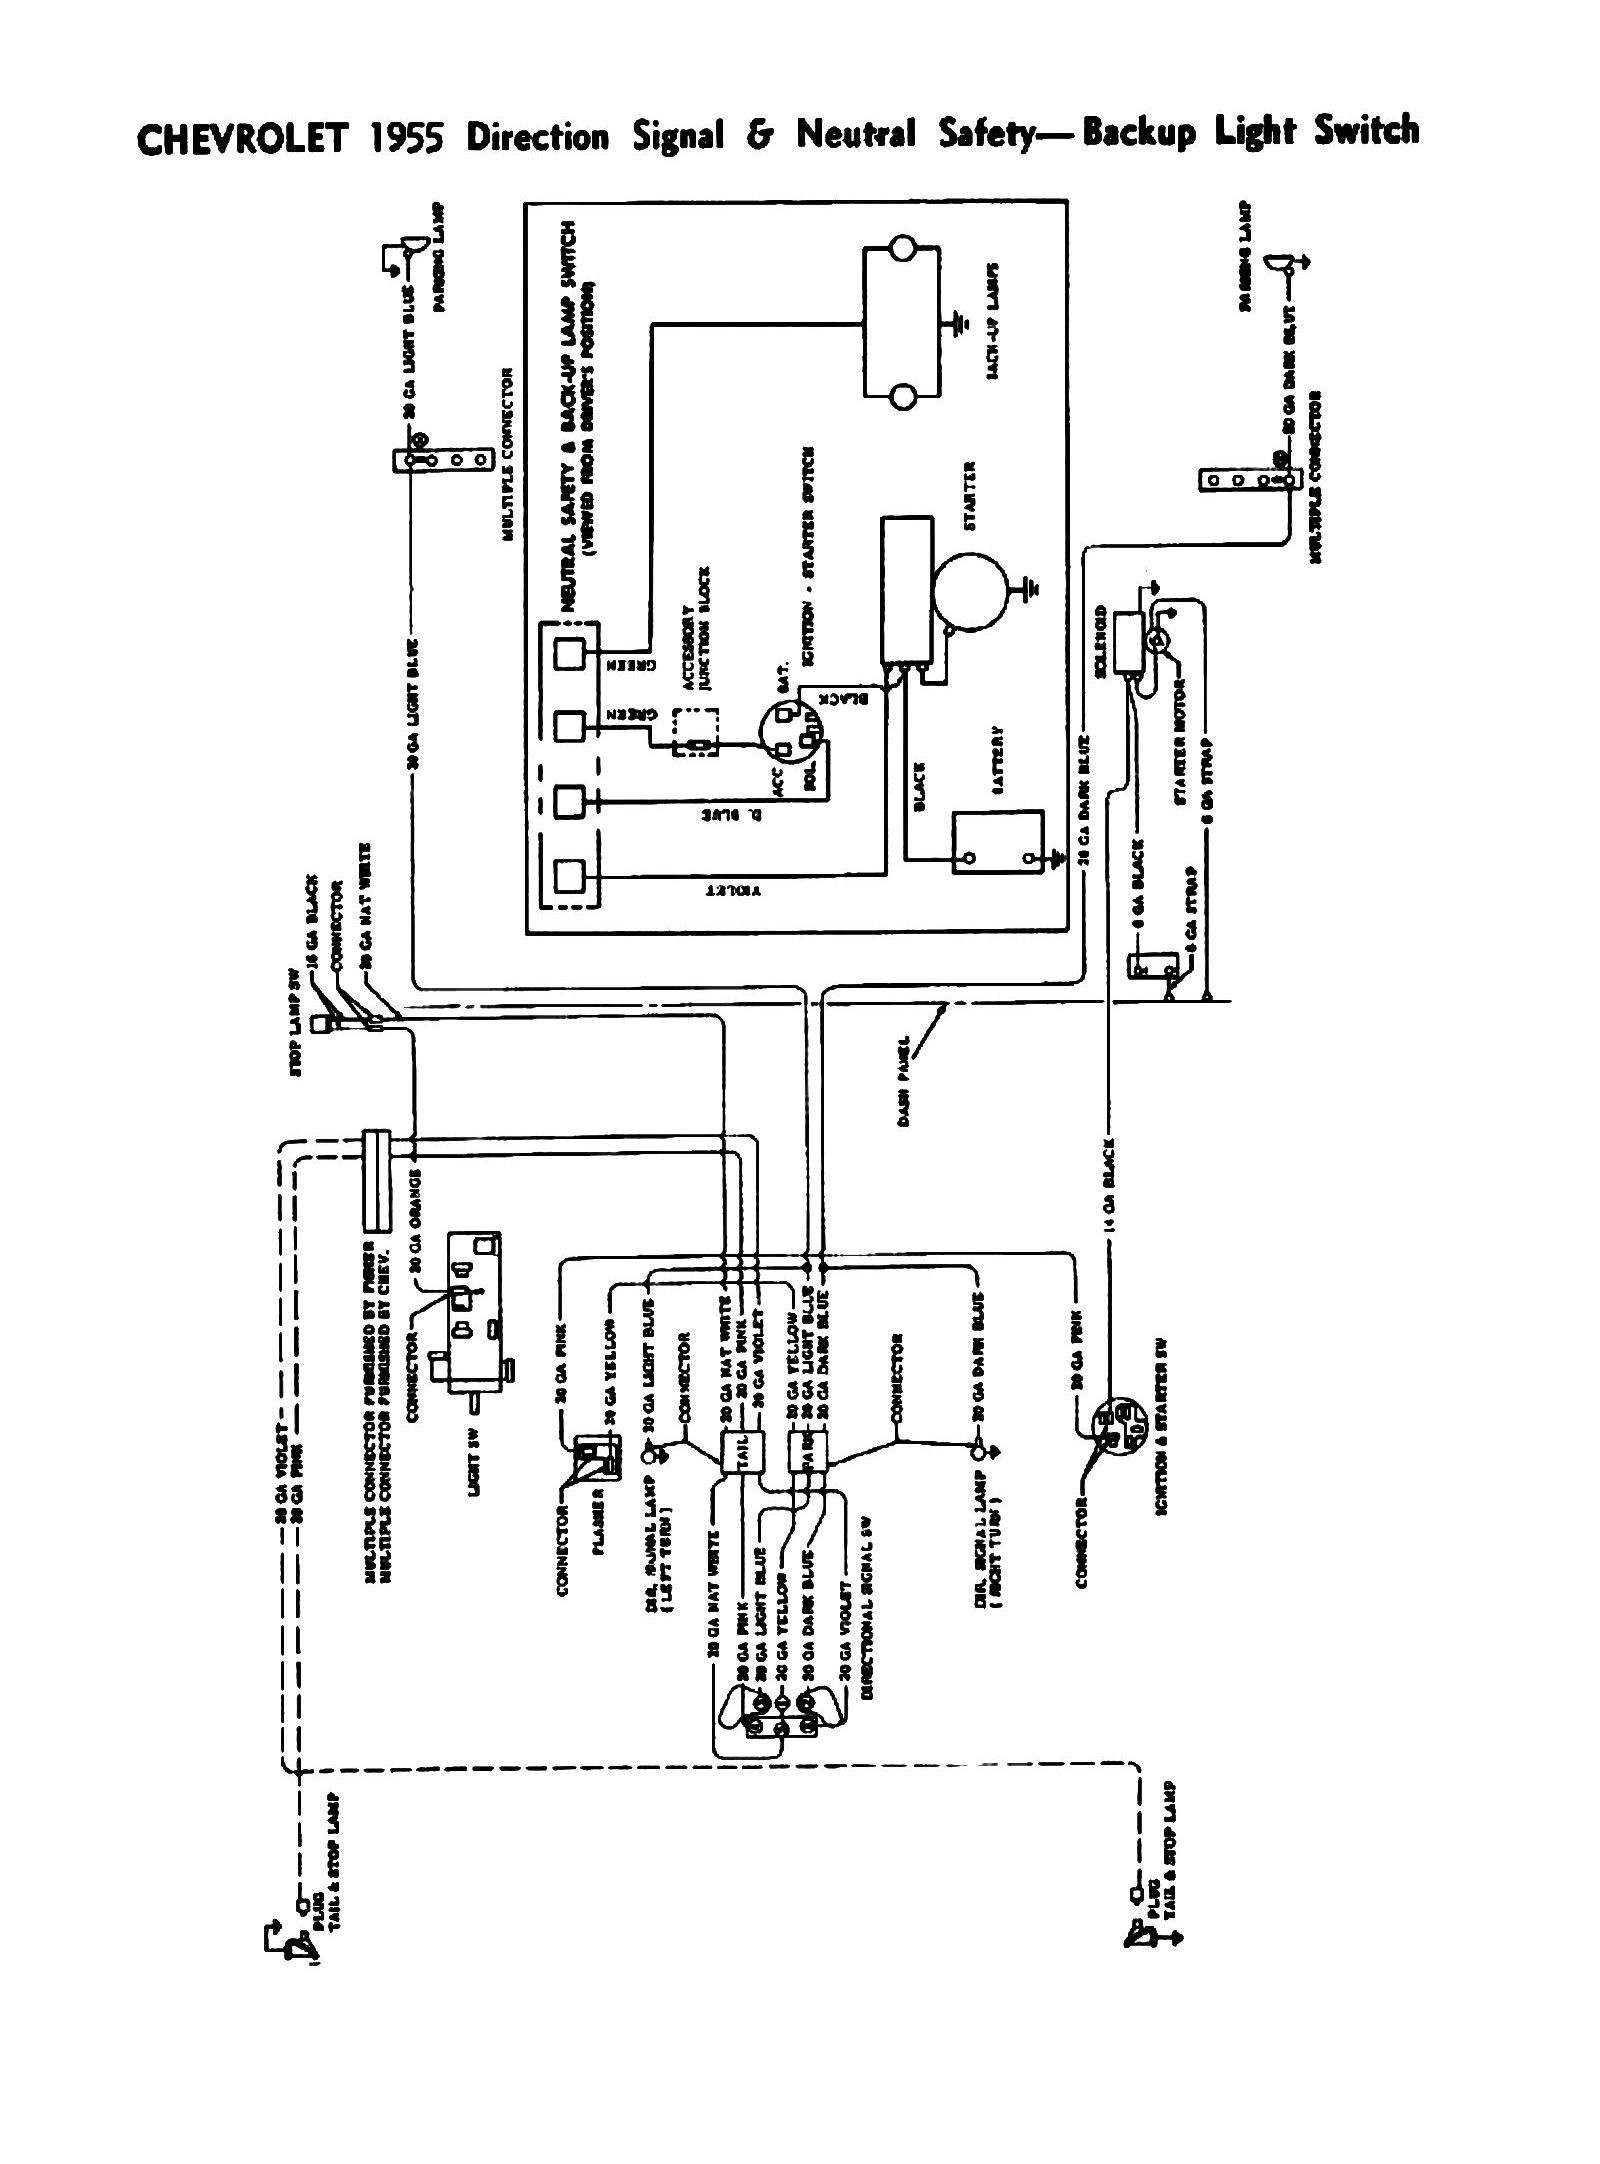 mtd electric pto 18 horse ignition switch wiring diagram mtd ignition switch wiring diagram | free wiring diagram #1